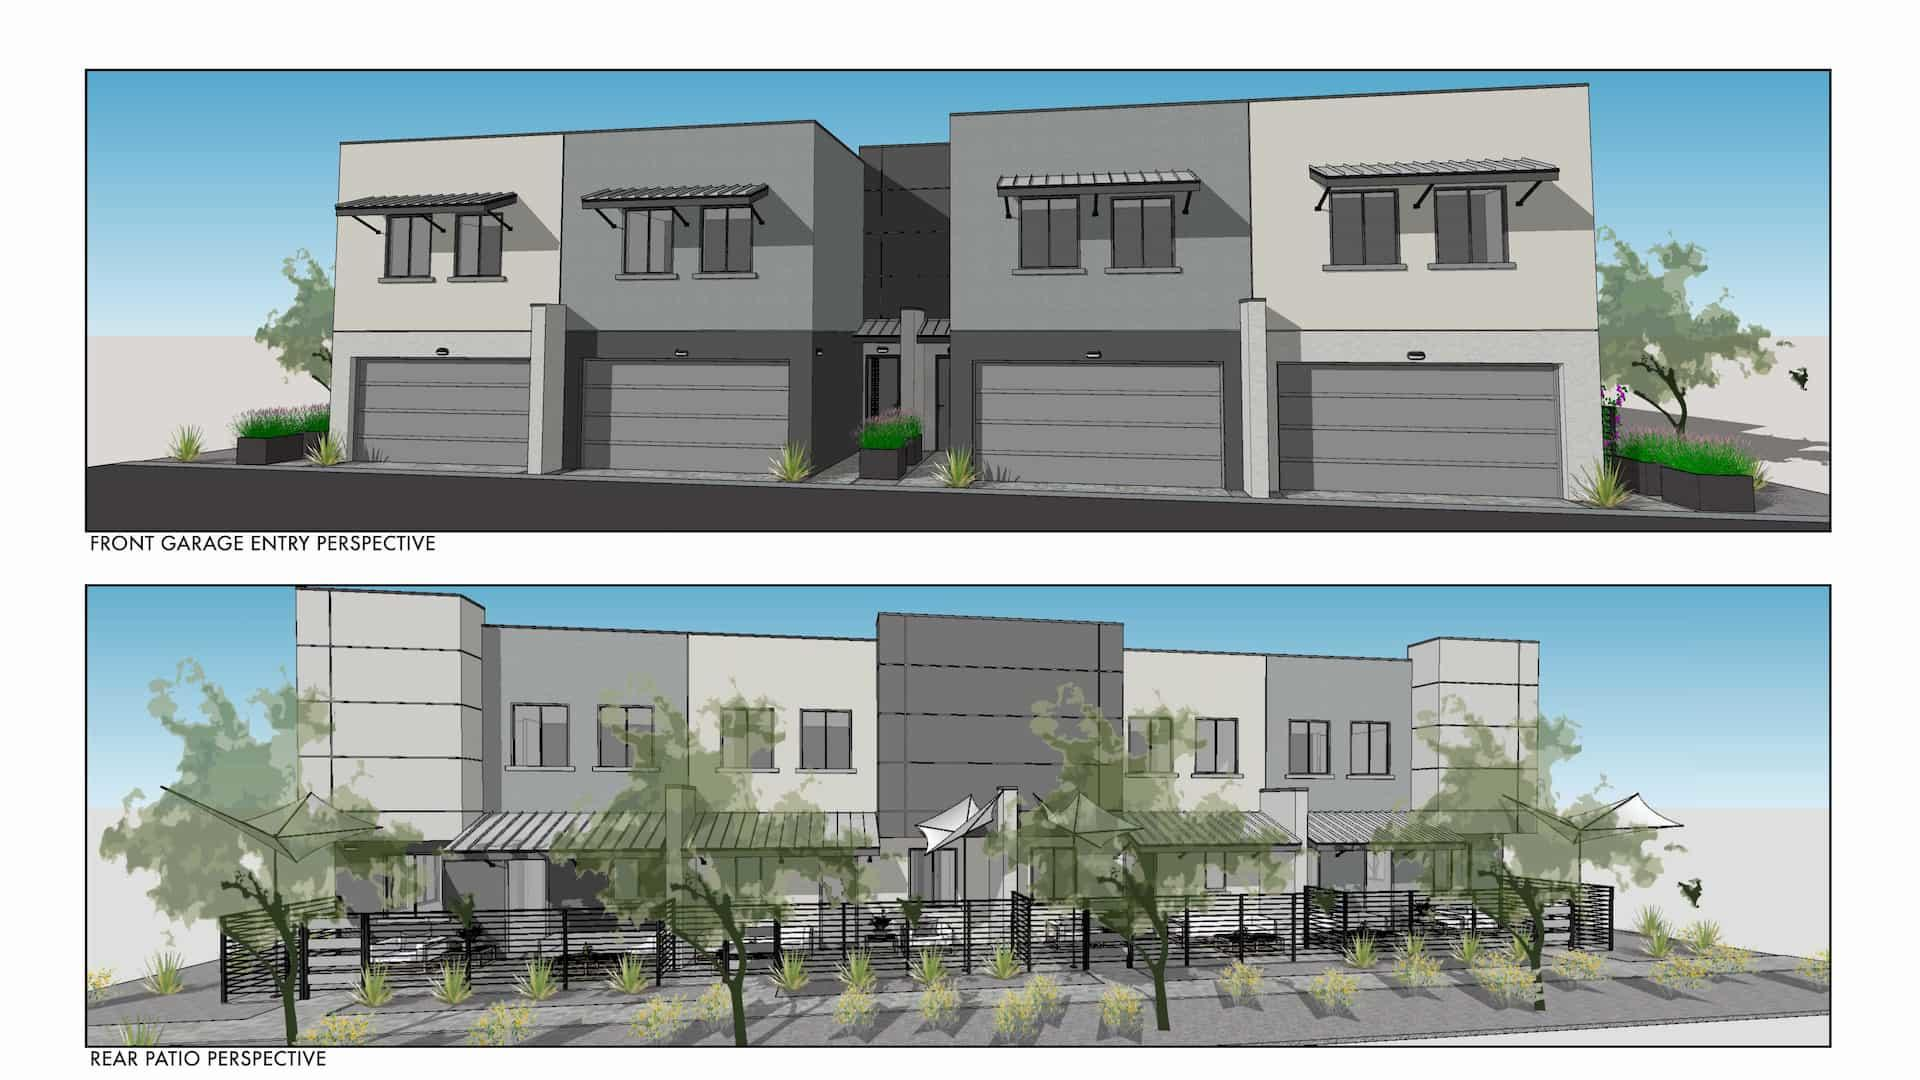 83rd & Thomas Townhome Rendering